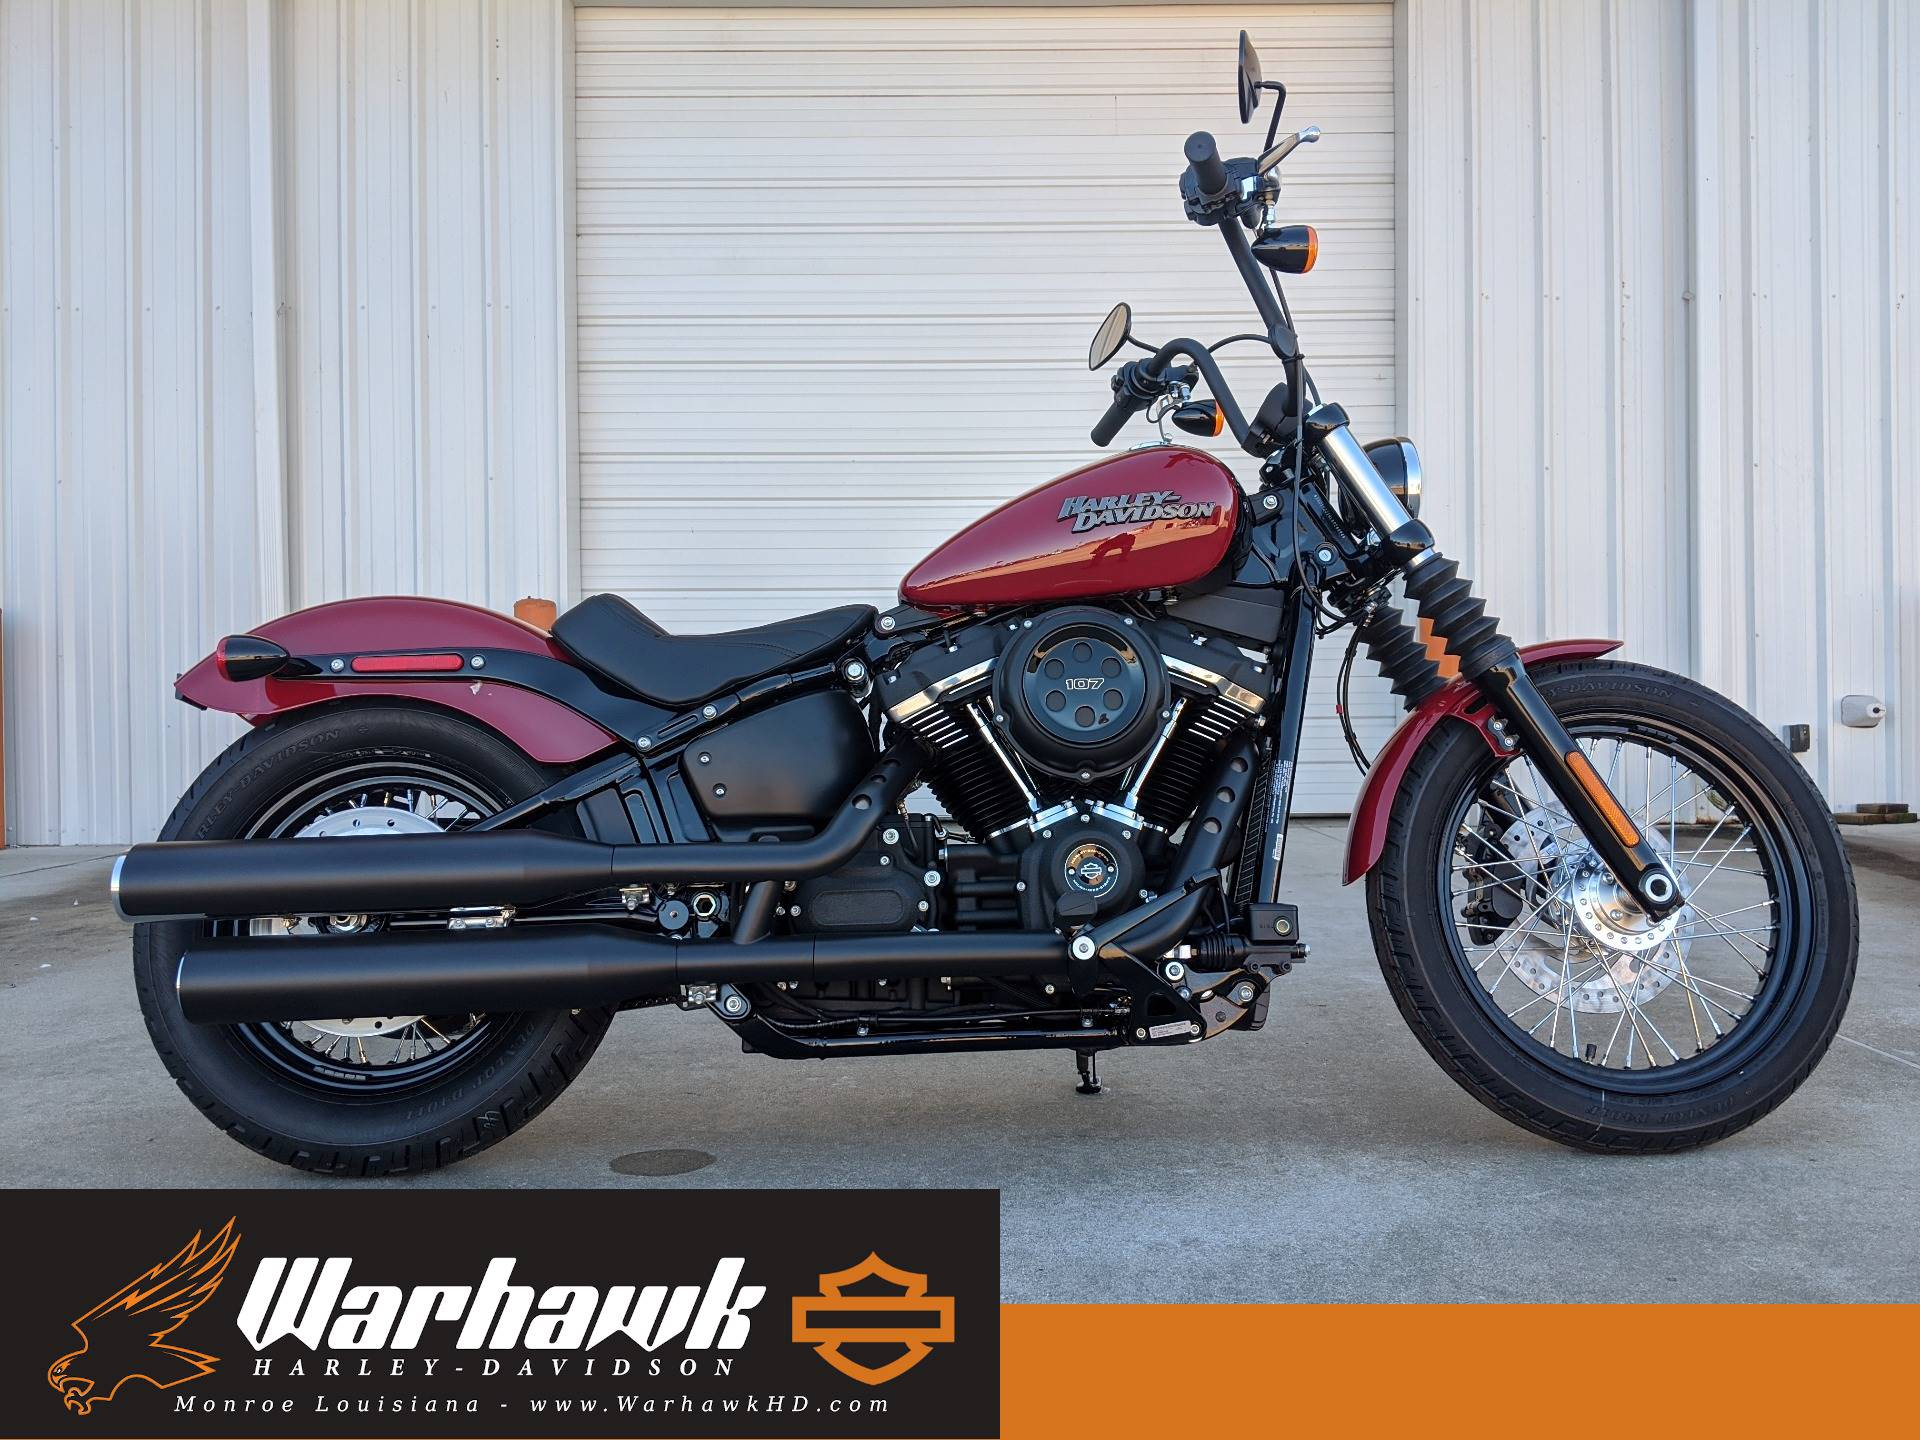 2020 street bob for sale - Photo 1